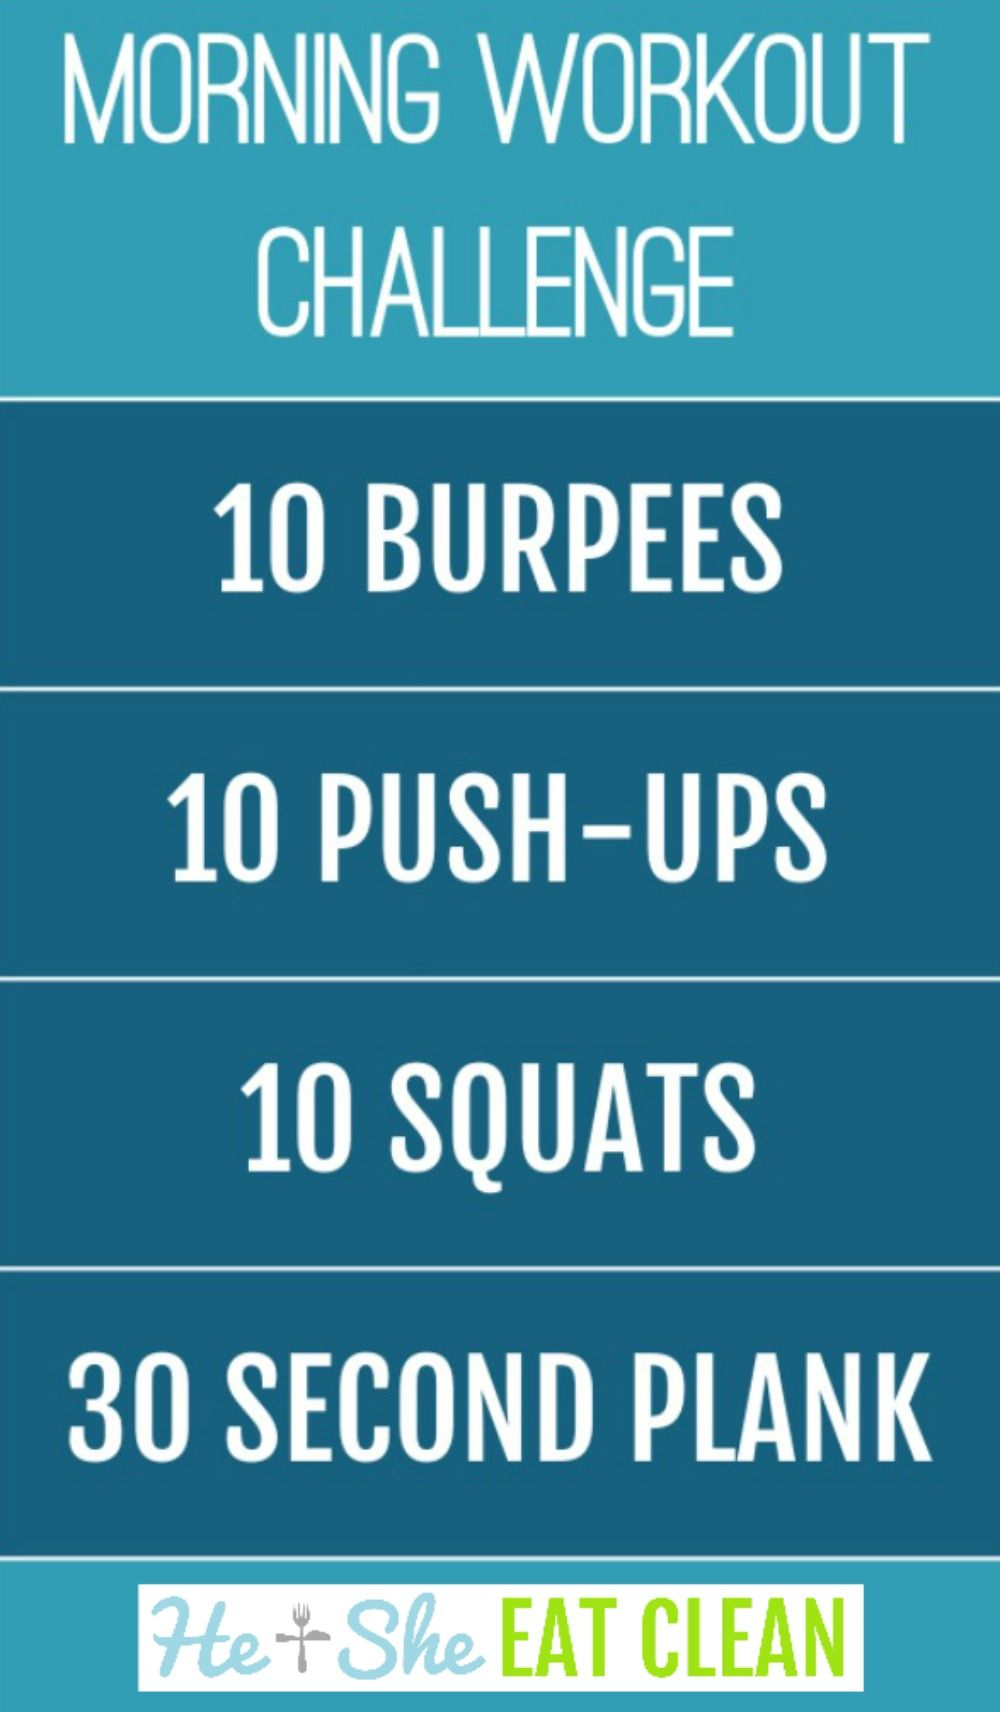 Looking to jumpstart your mornings? Do this quick and effective workout each morning. With burpees,...